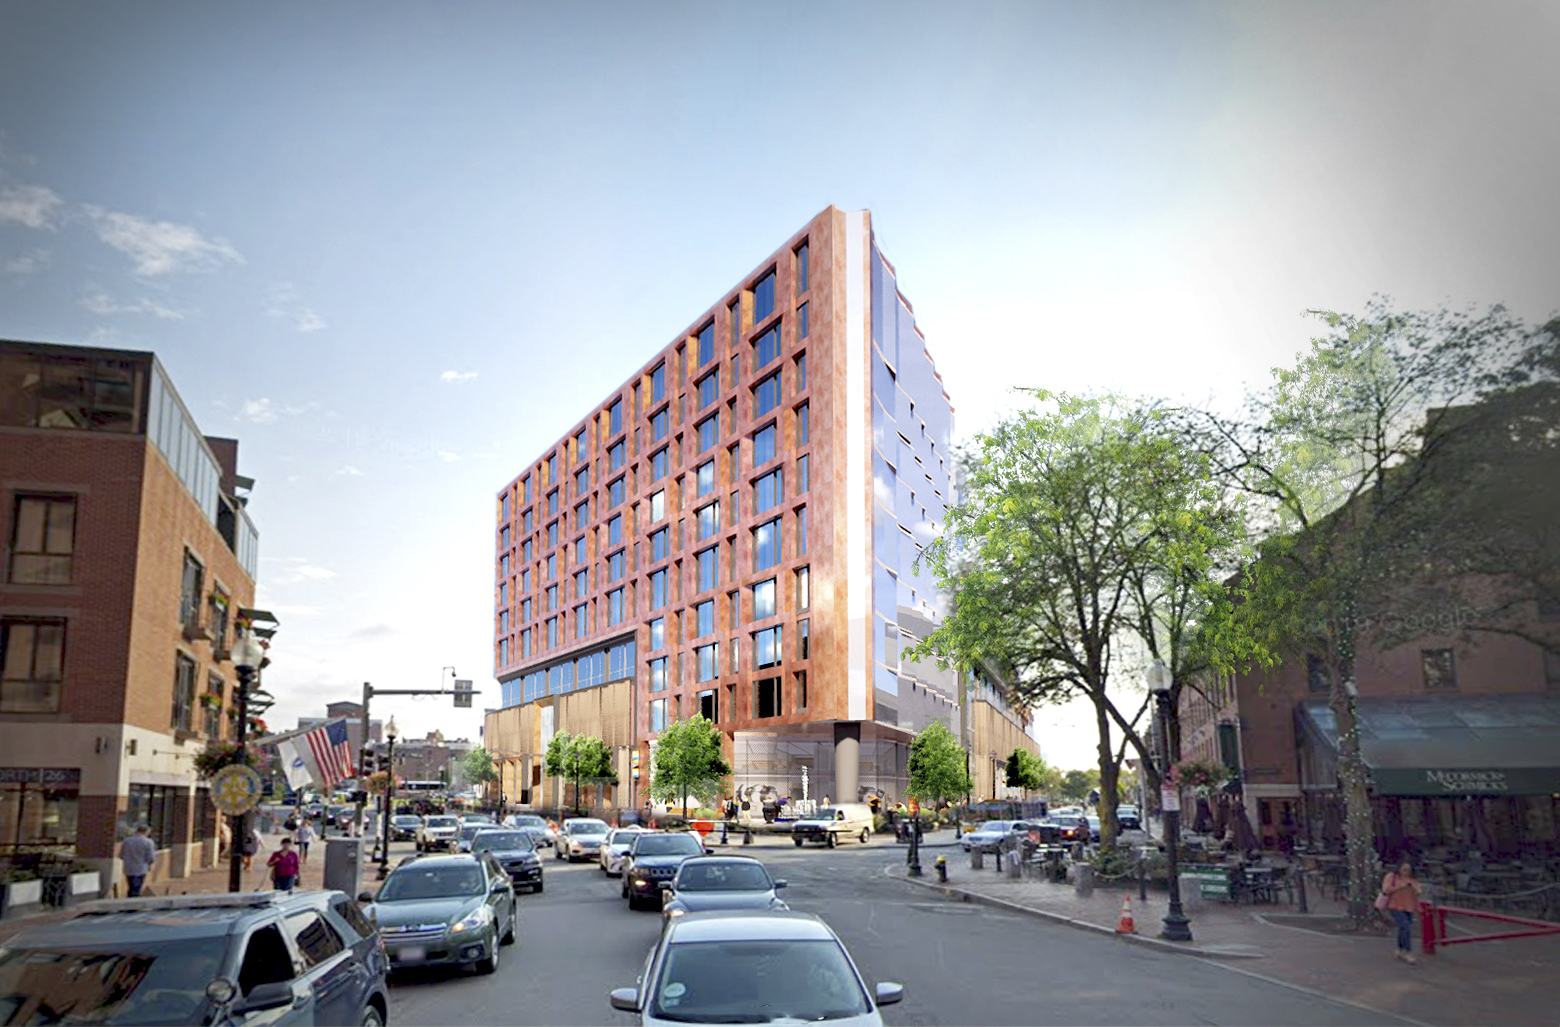 Dock Square Garage Project Moves Forward - To Bring 209 Condos to Corner of Faneuil Hall and Rose Kennedy Greenway